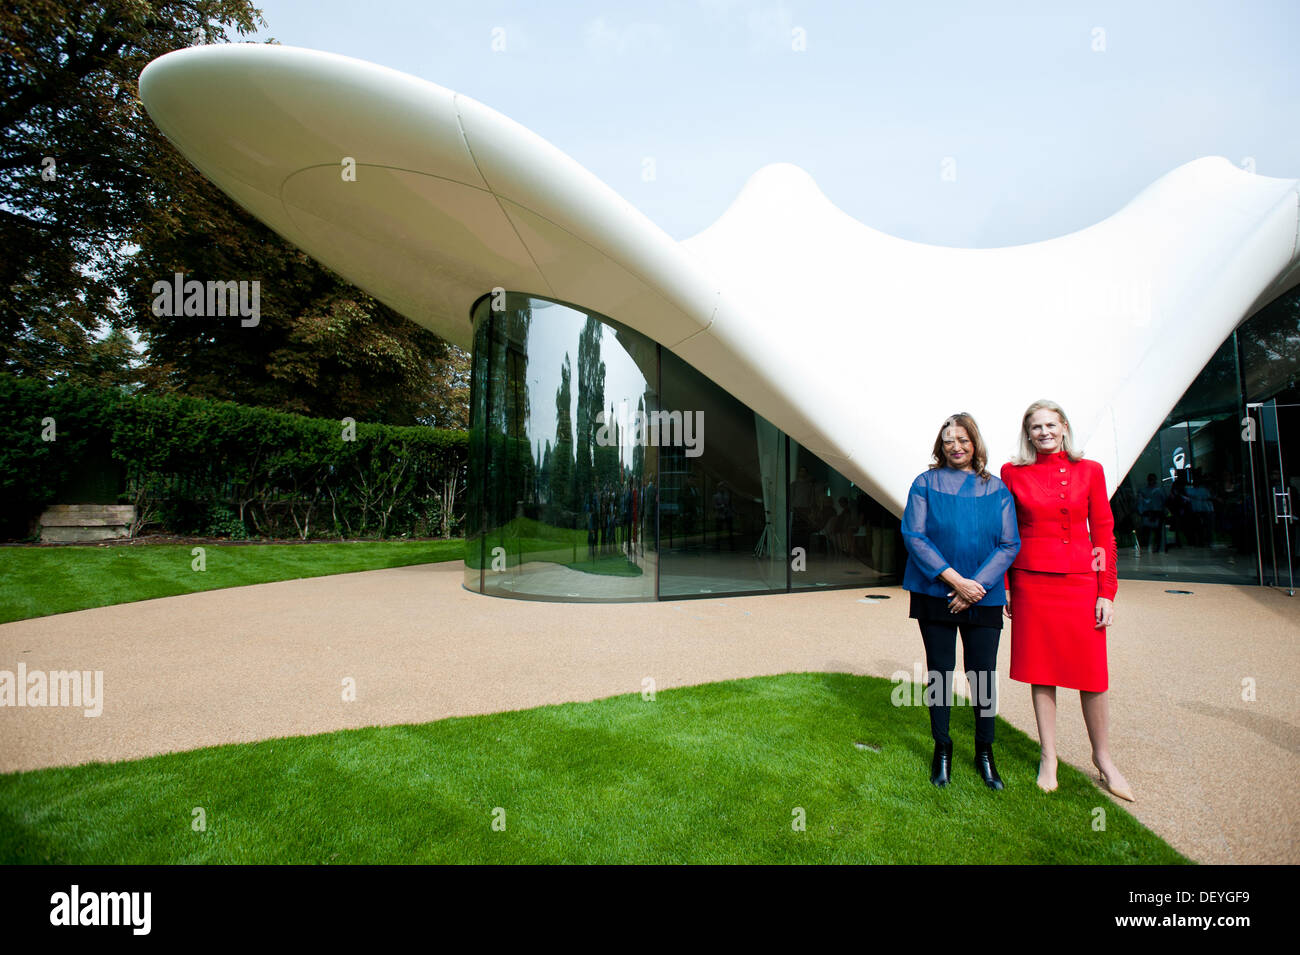 London, UK - 25 September 2013: architect Zaha Hadid (L) and Dame Theresa Sackler (R) pose for pictures in front Stock Photo